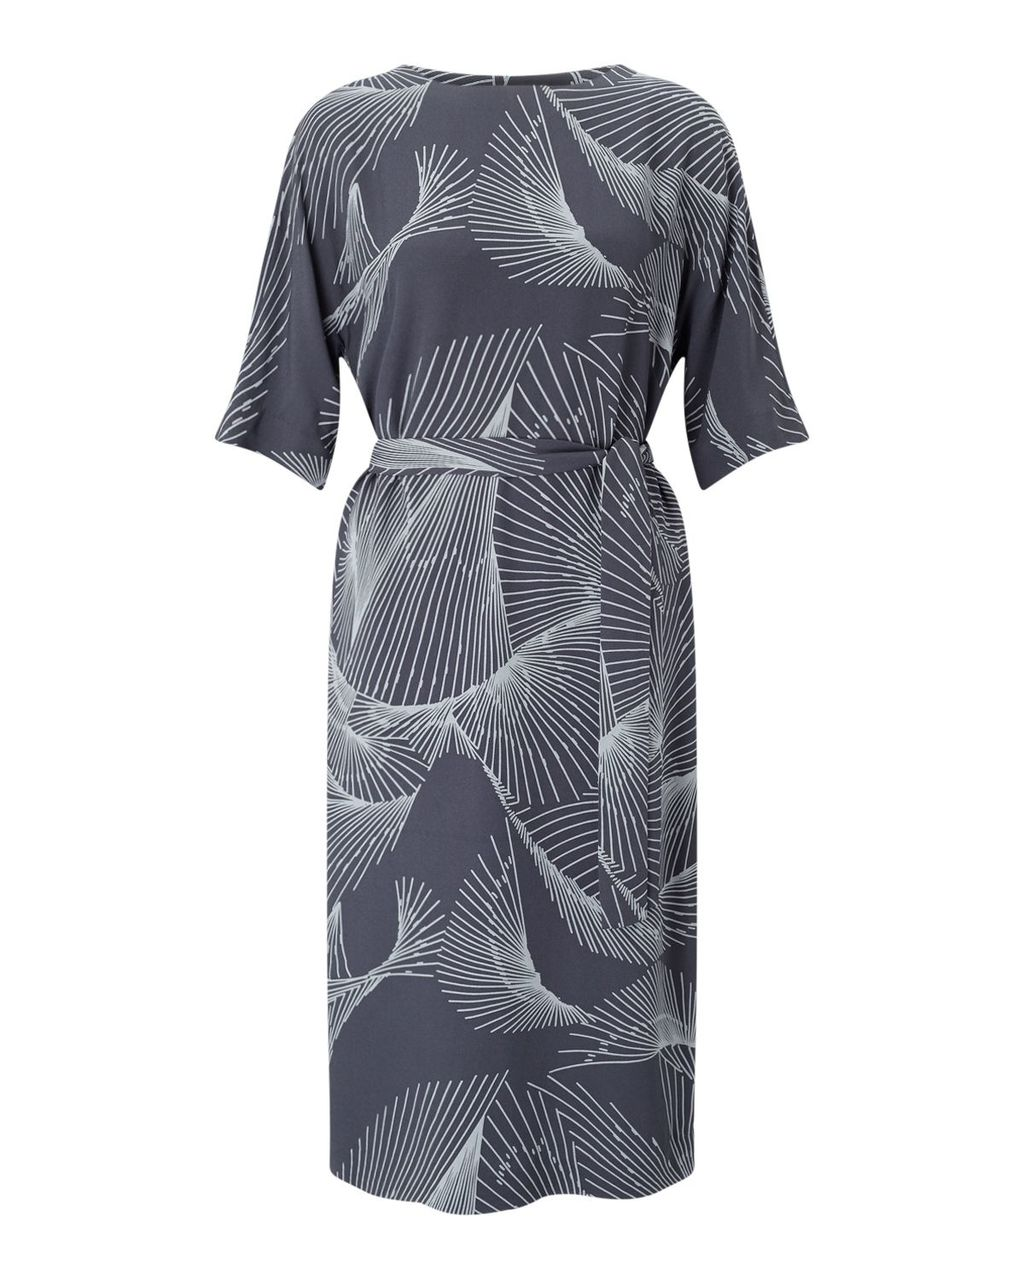 Broken Glass Crepe Dress, Grey - style: shift; waist detail: belted waist/tie at waist/drawstring; predominant colour: charcoal; secondary colour: light grey; occasions: evening; length: on the knee; fit: body skimming; fibres: viscose/rayon - 100%; neckline: crew; sleeve length: short sleeve; sleeve style: standard; texture group: crepes; pattern type: fabric; pattern: patterned/print; multicoloured: multicoloured; season: a/w 2016; wardrobe: event